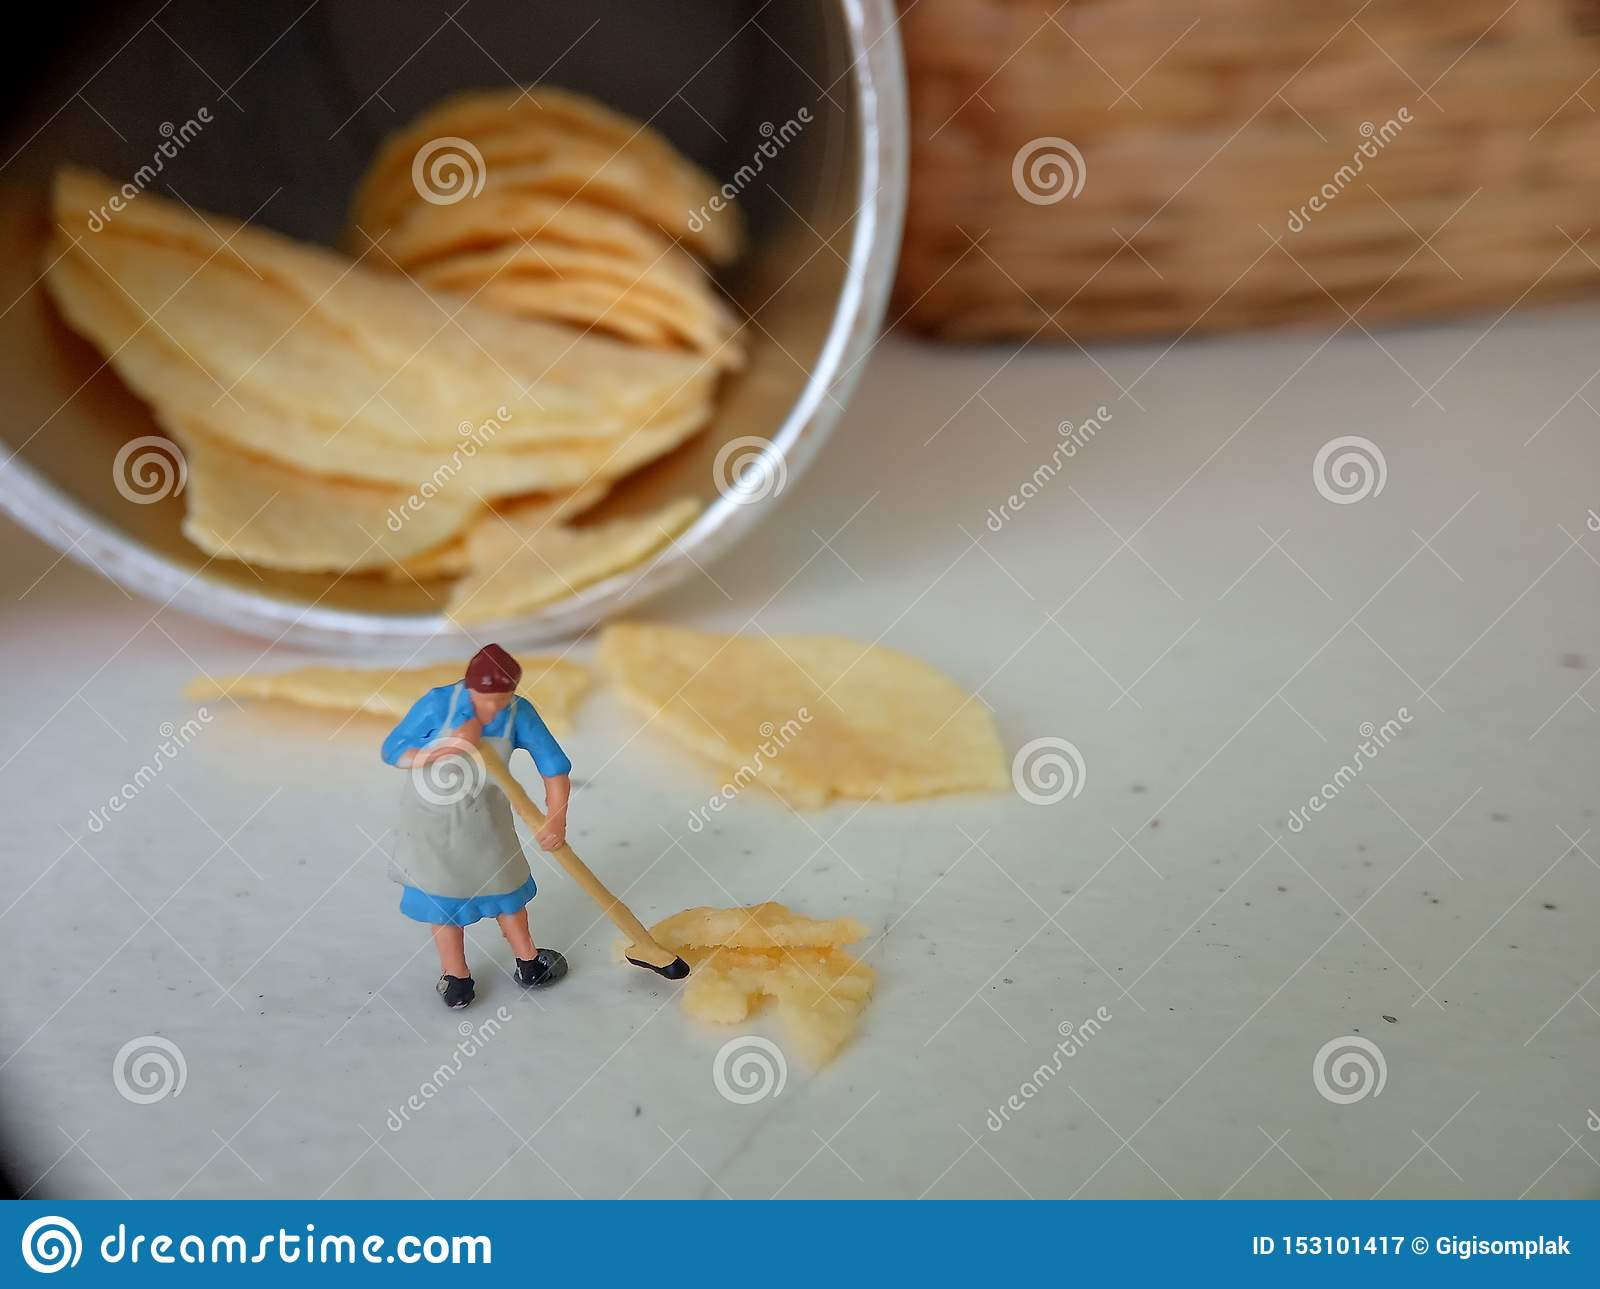 Conceptual, Photo 1 woman cleaning spill of cheese potato chips